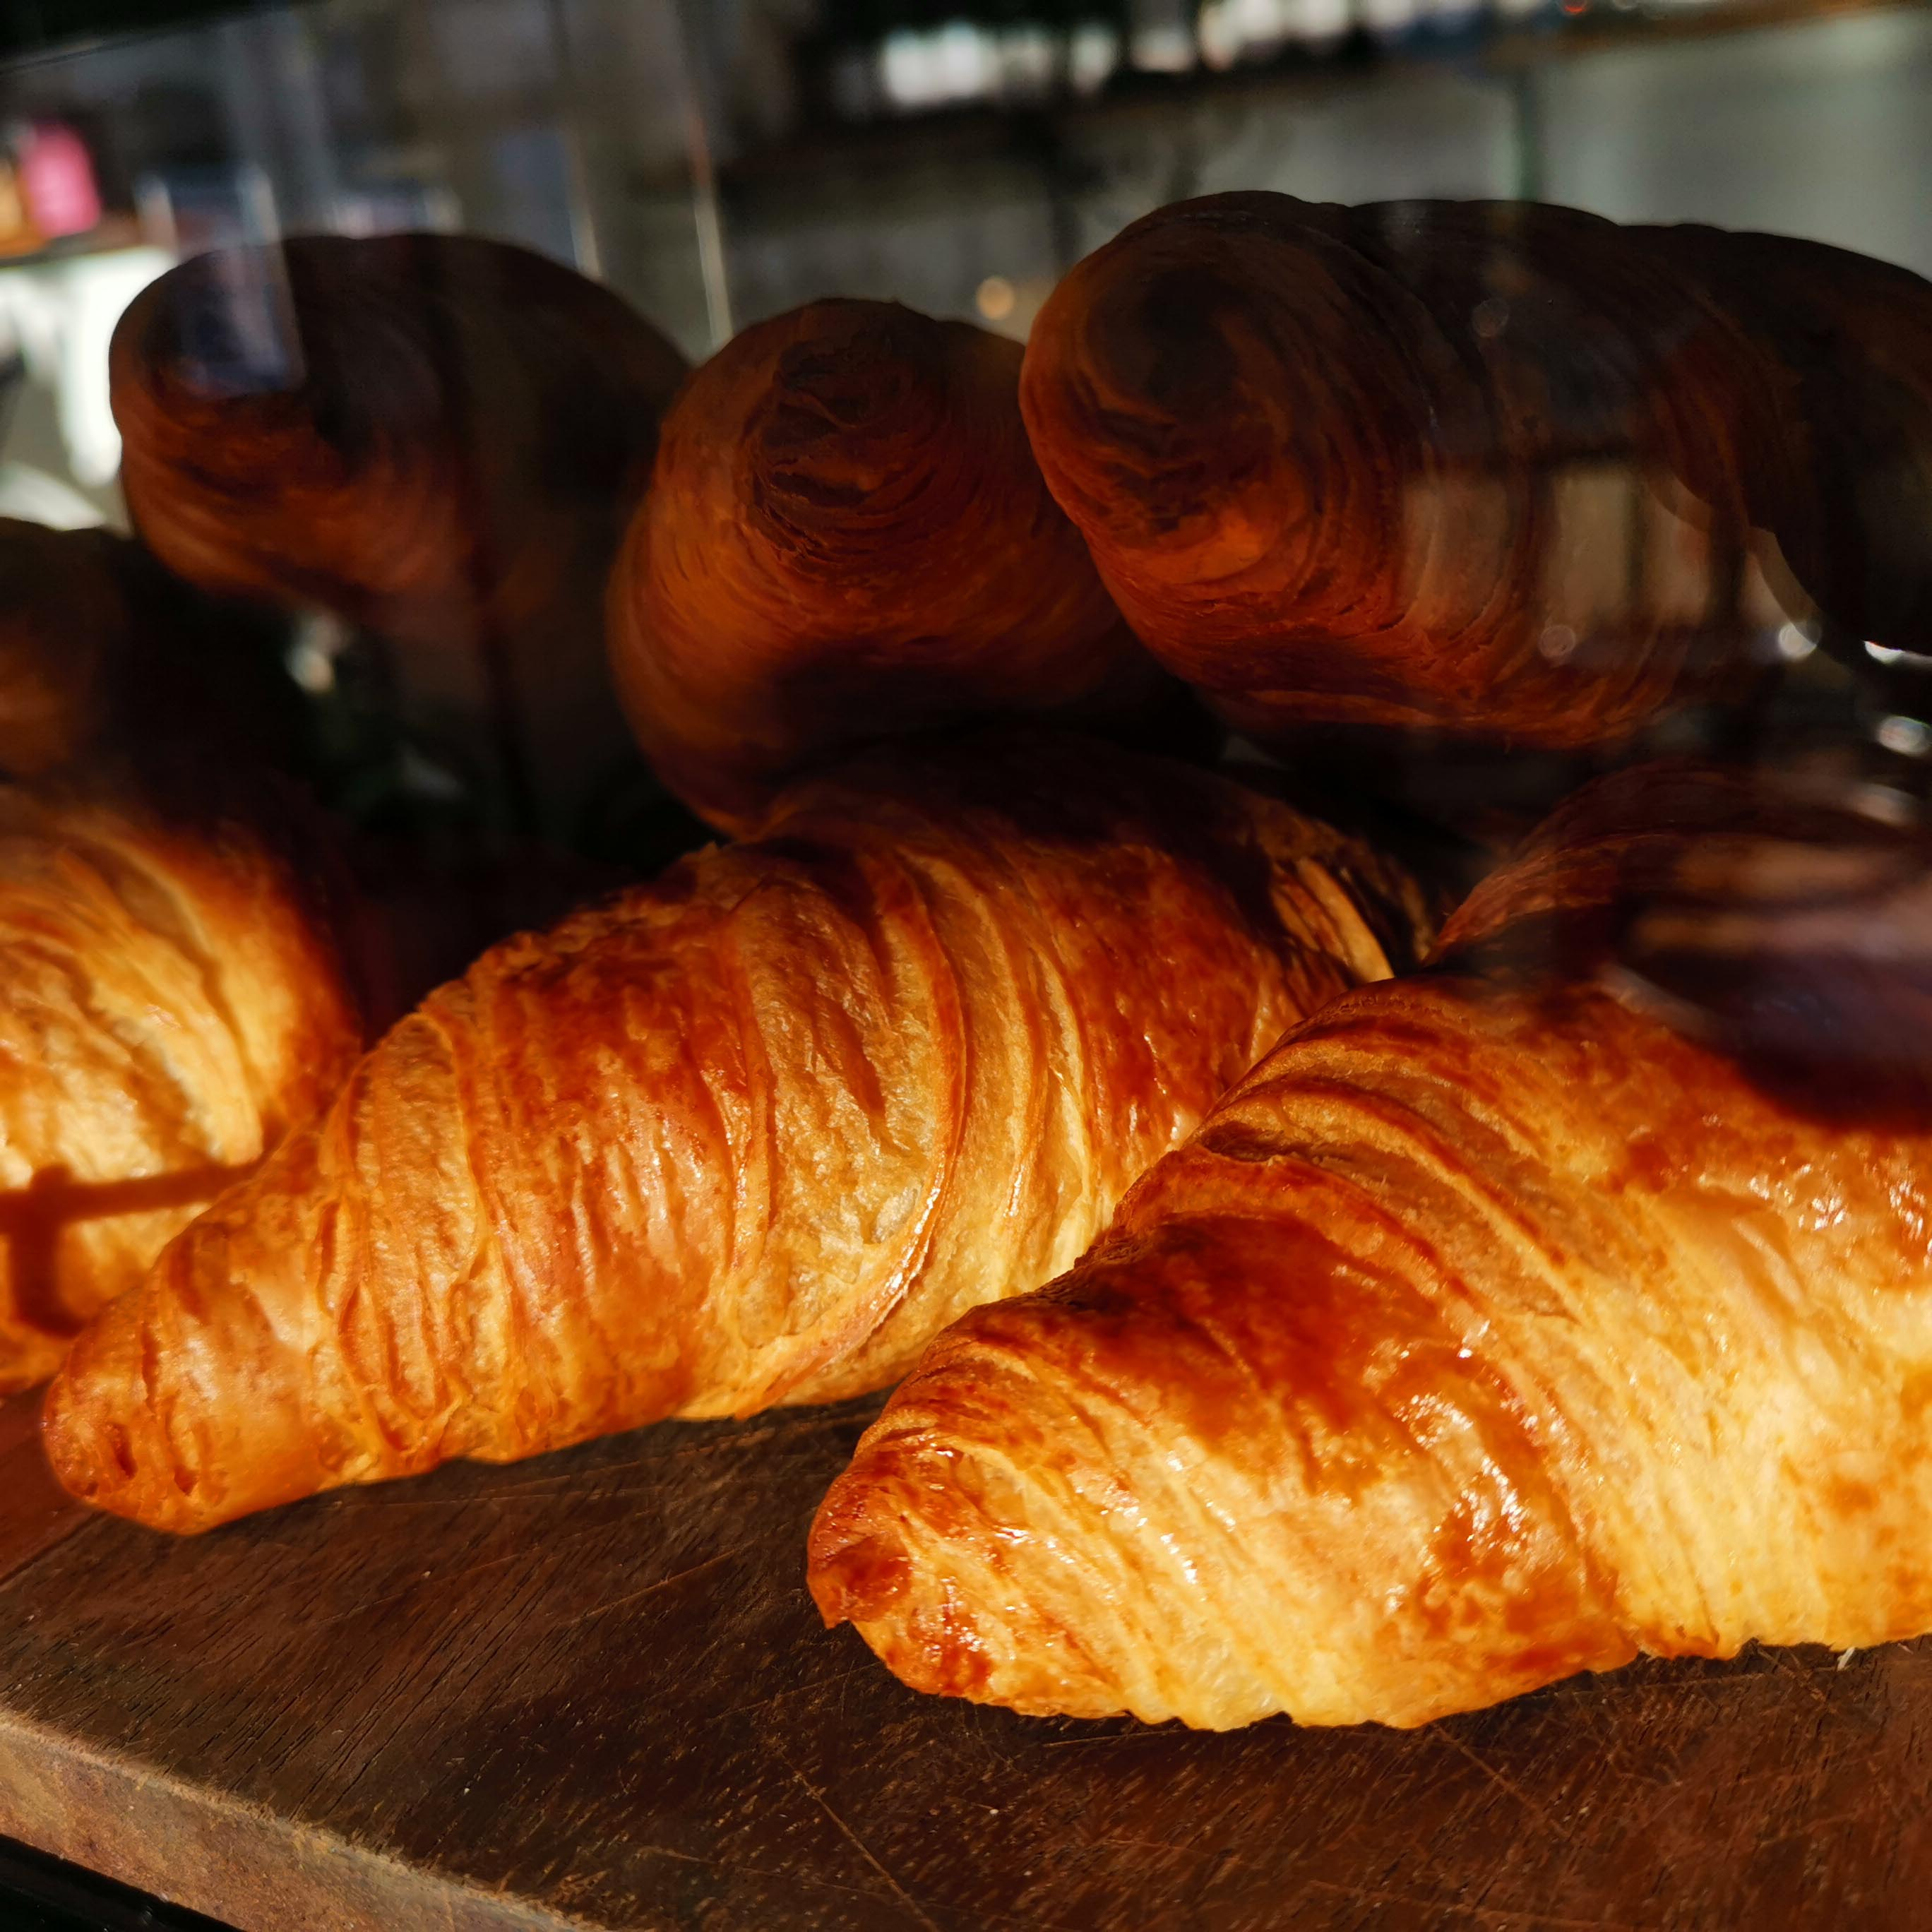 Croissants on display